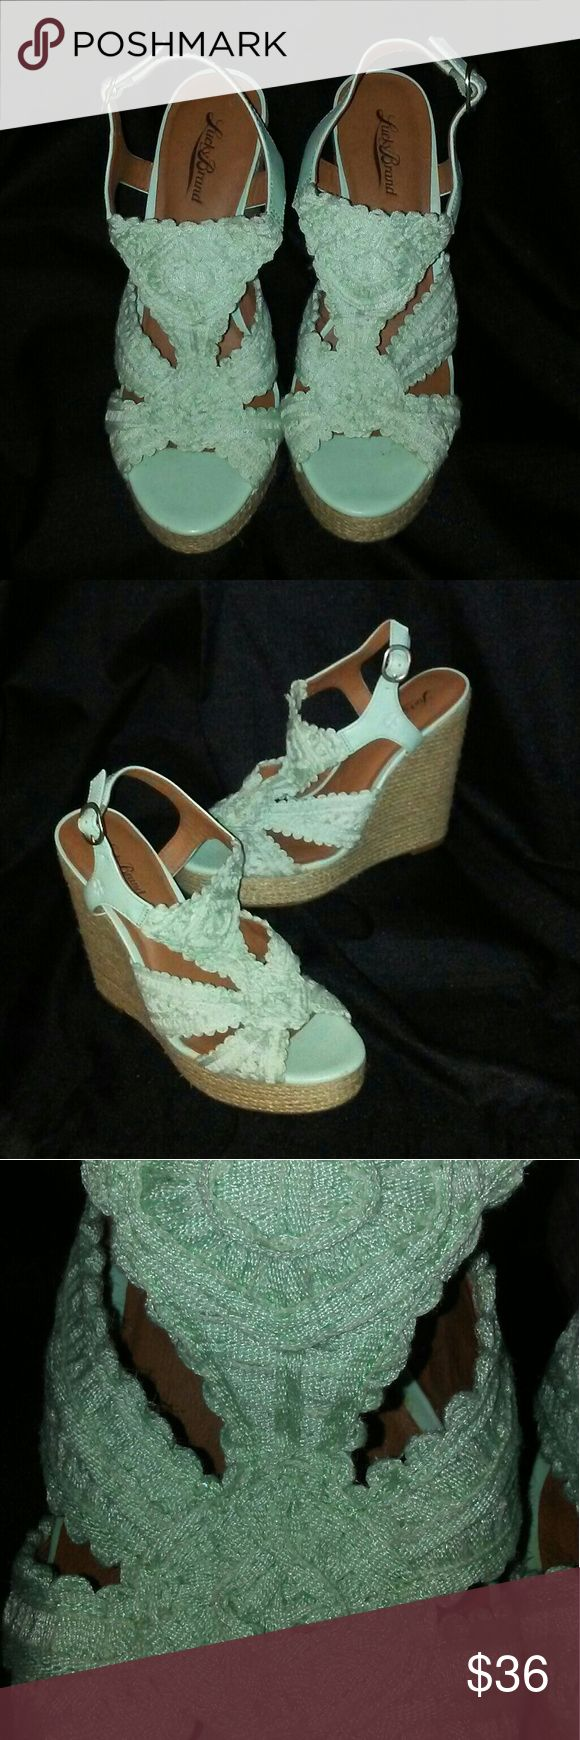 Lucky Brand Teal Wedges Worn once then stored away. Great condition. Very minor scratch as seen in pic6. Only little bit of wear shown on bottom of shoes. No cracking or peeling. No stains on fabric only little fraying but nothing noticeable. Smoke and pet free home. Open to offers. Lucky Brand Shoes Wedges